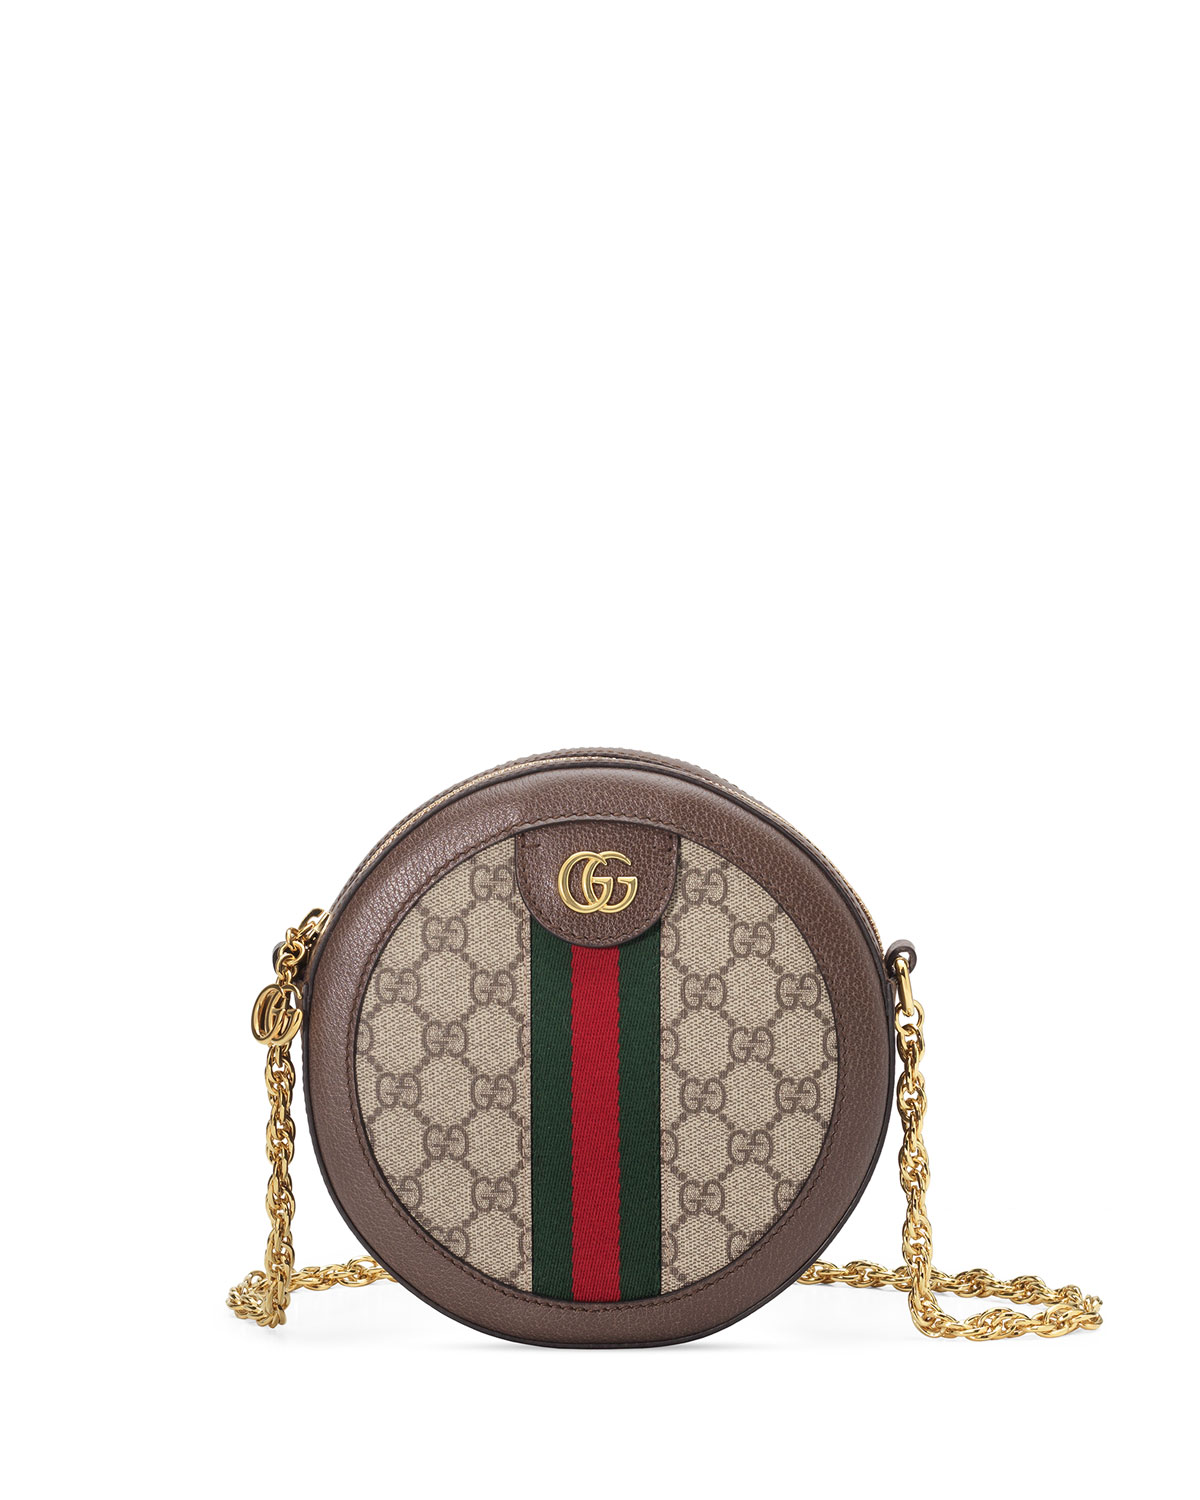 633420ca4773 Gucci Ophidia Mini GG Supreme Canvas Crossbody Bag | Neiman Marcus